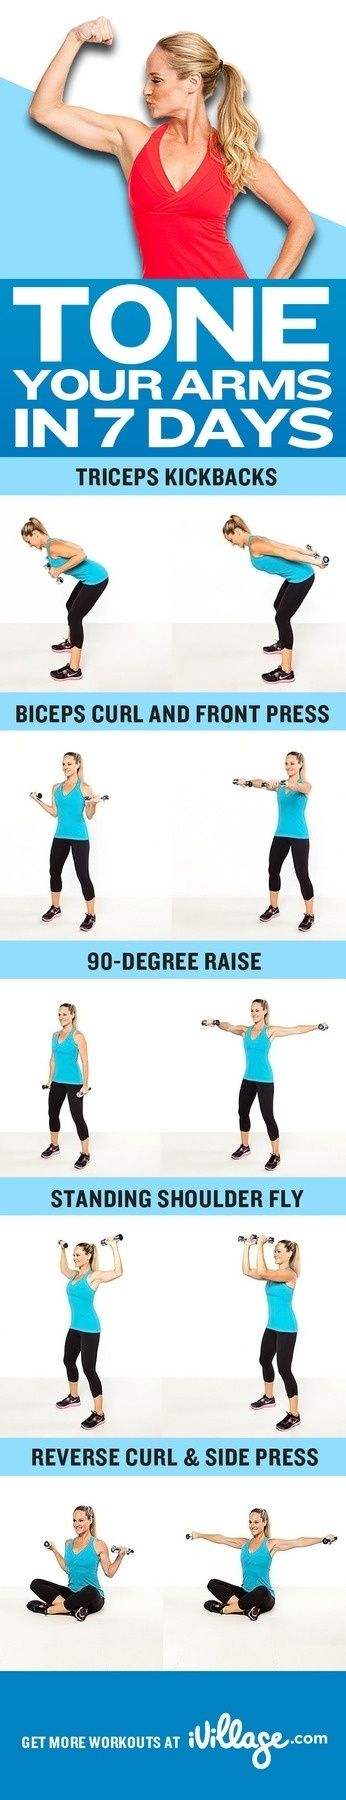 Tone your arms in 7 days with these easy kworkouts.